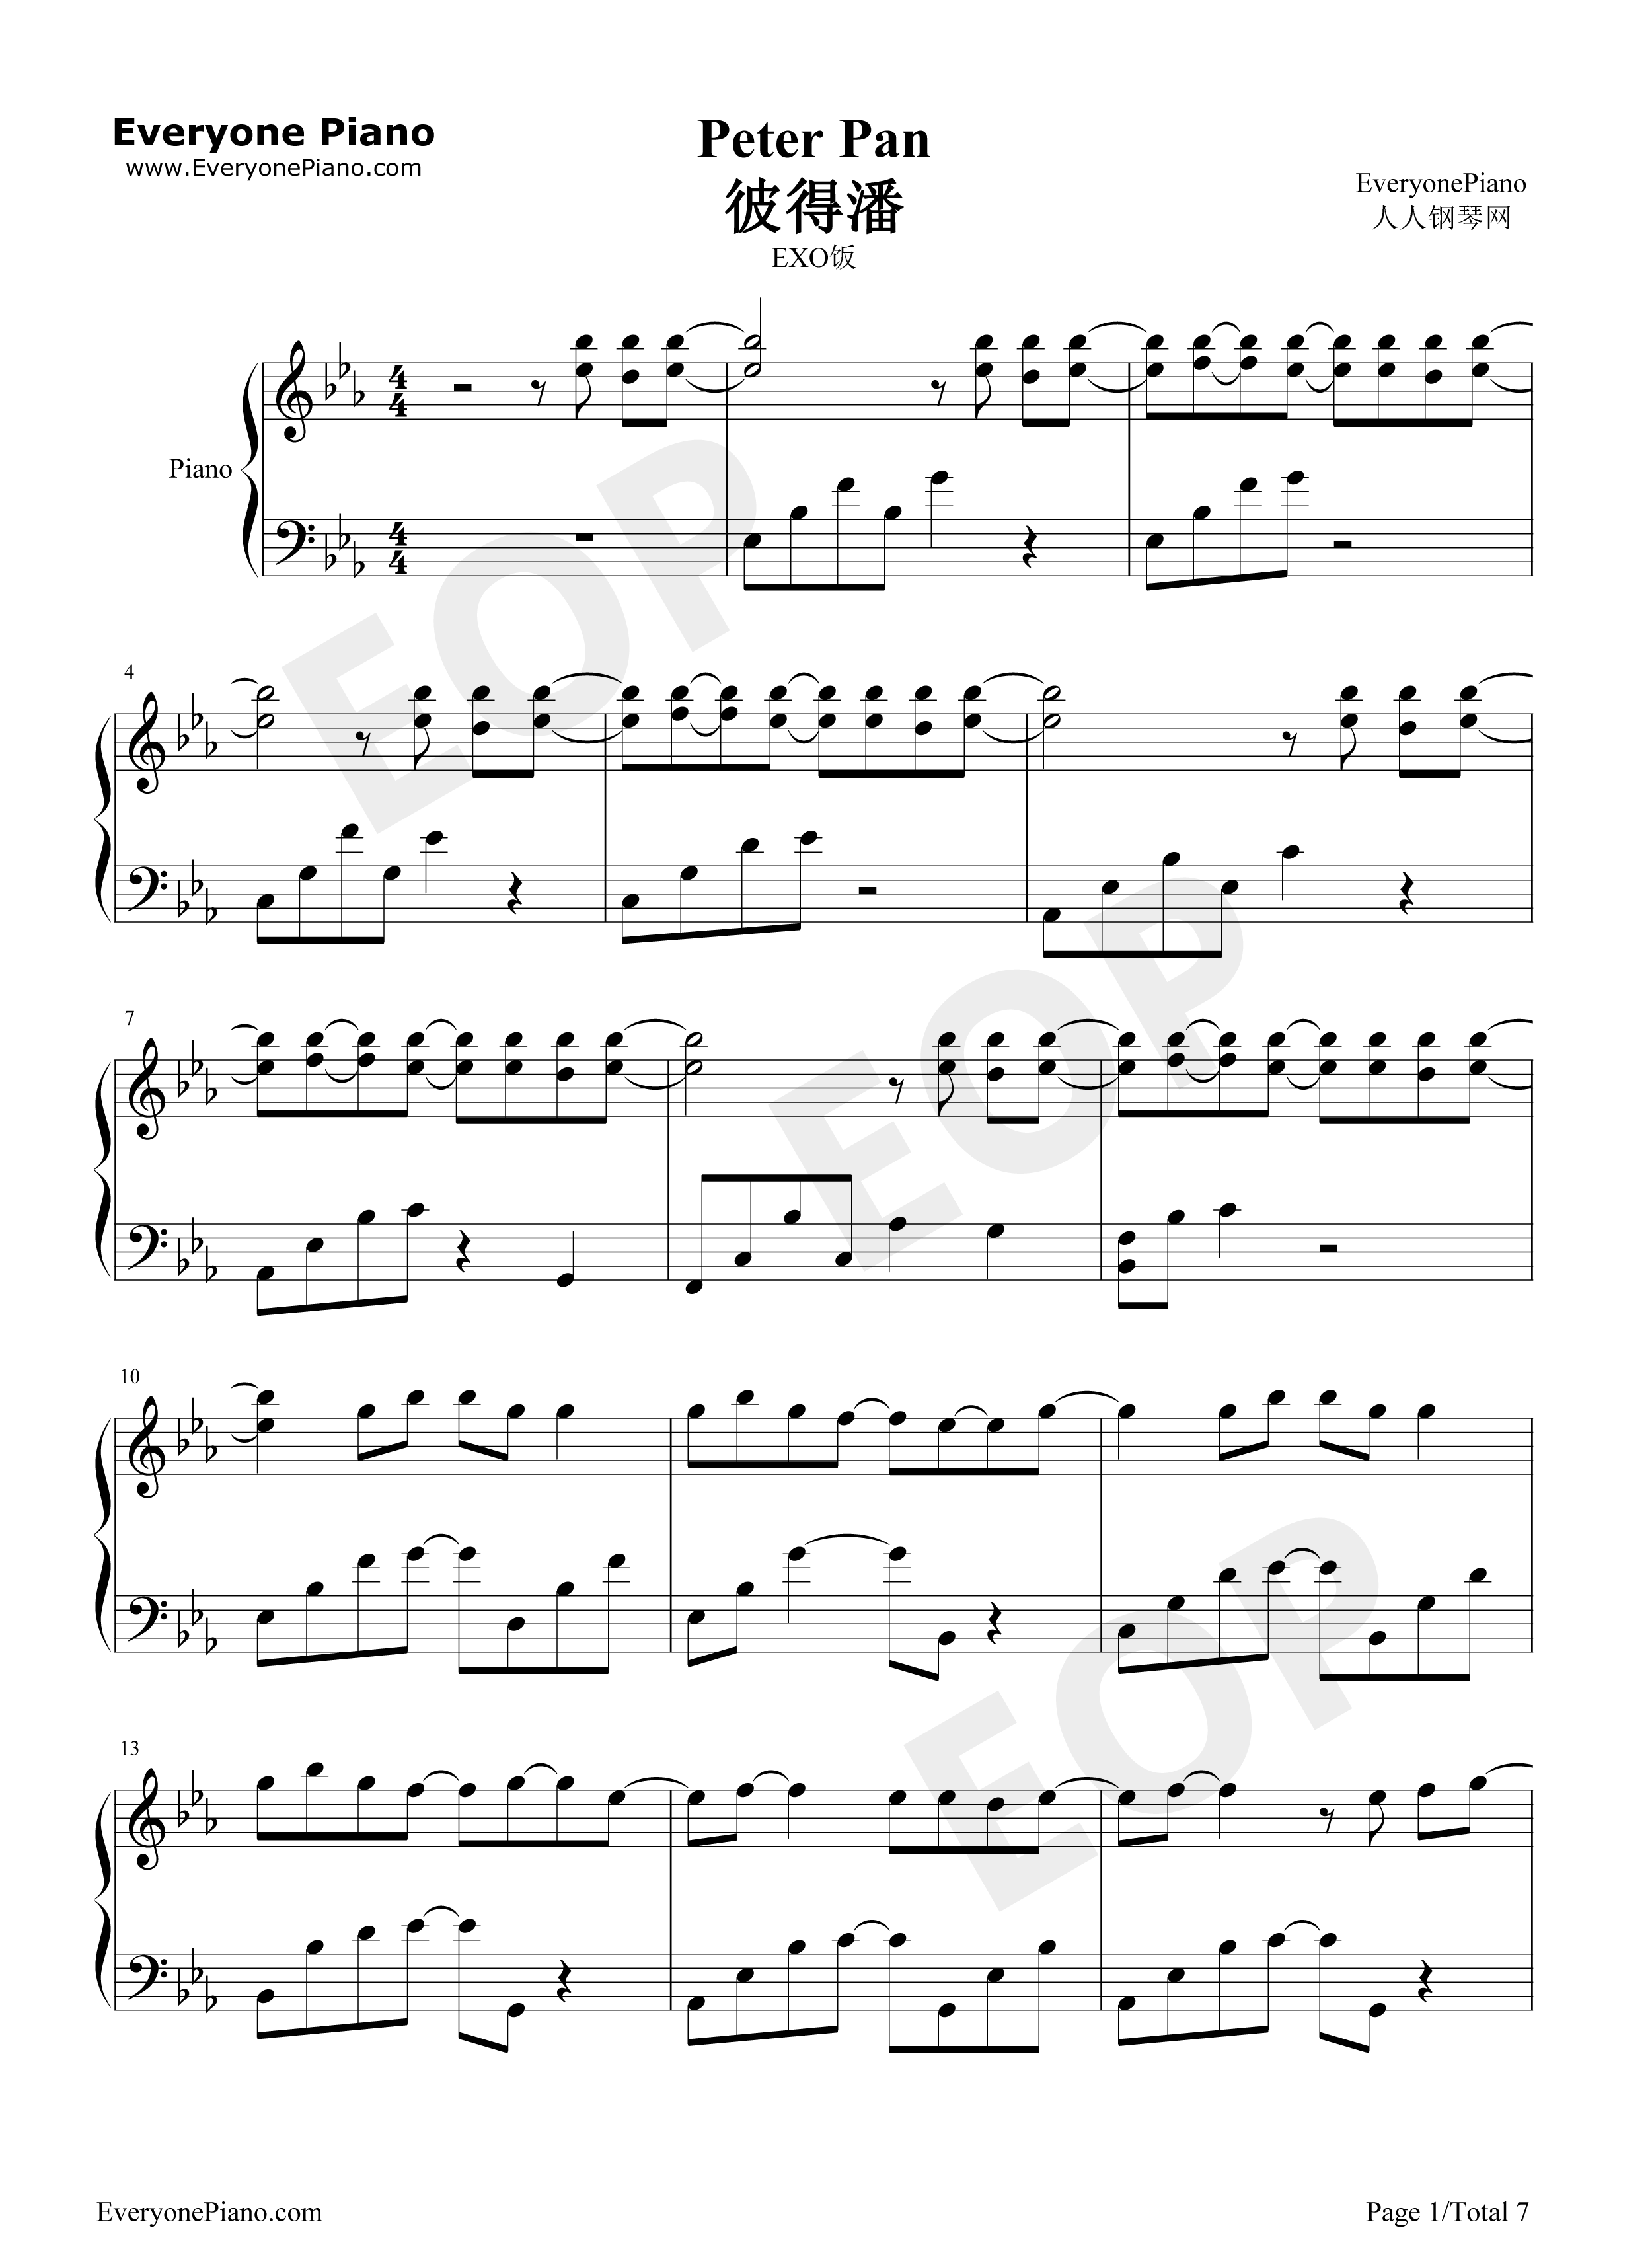 Peter pan exo stave preview 1 free piano sheet music piano chords listen now print sheet peter pan exo stave preview 1 hexwebz Images